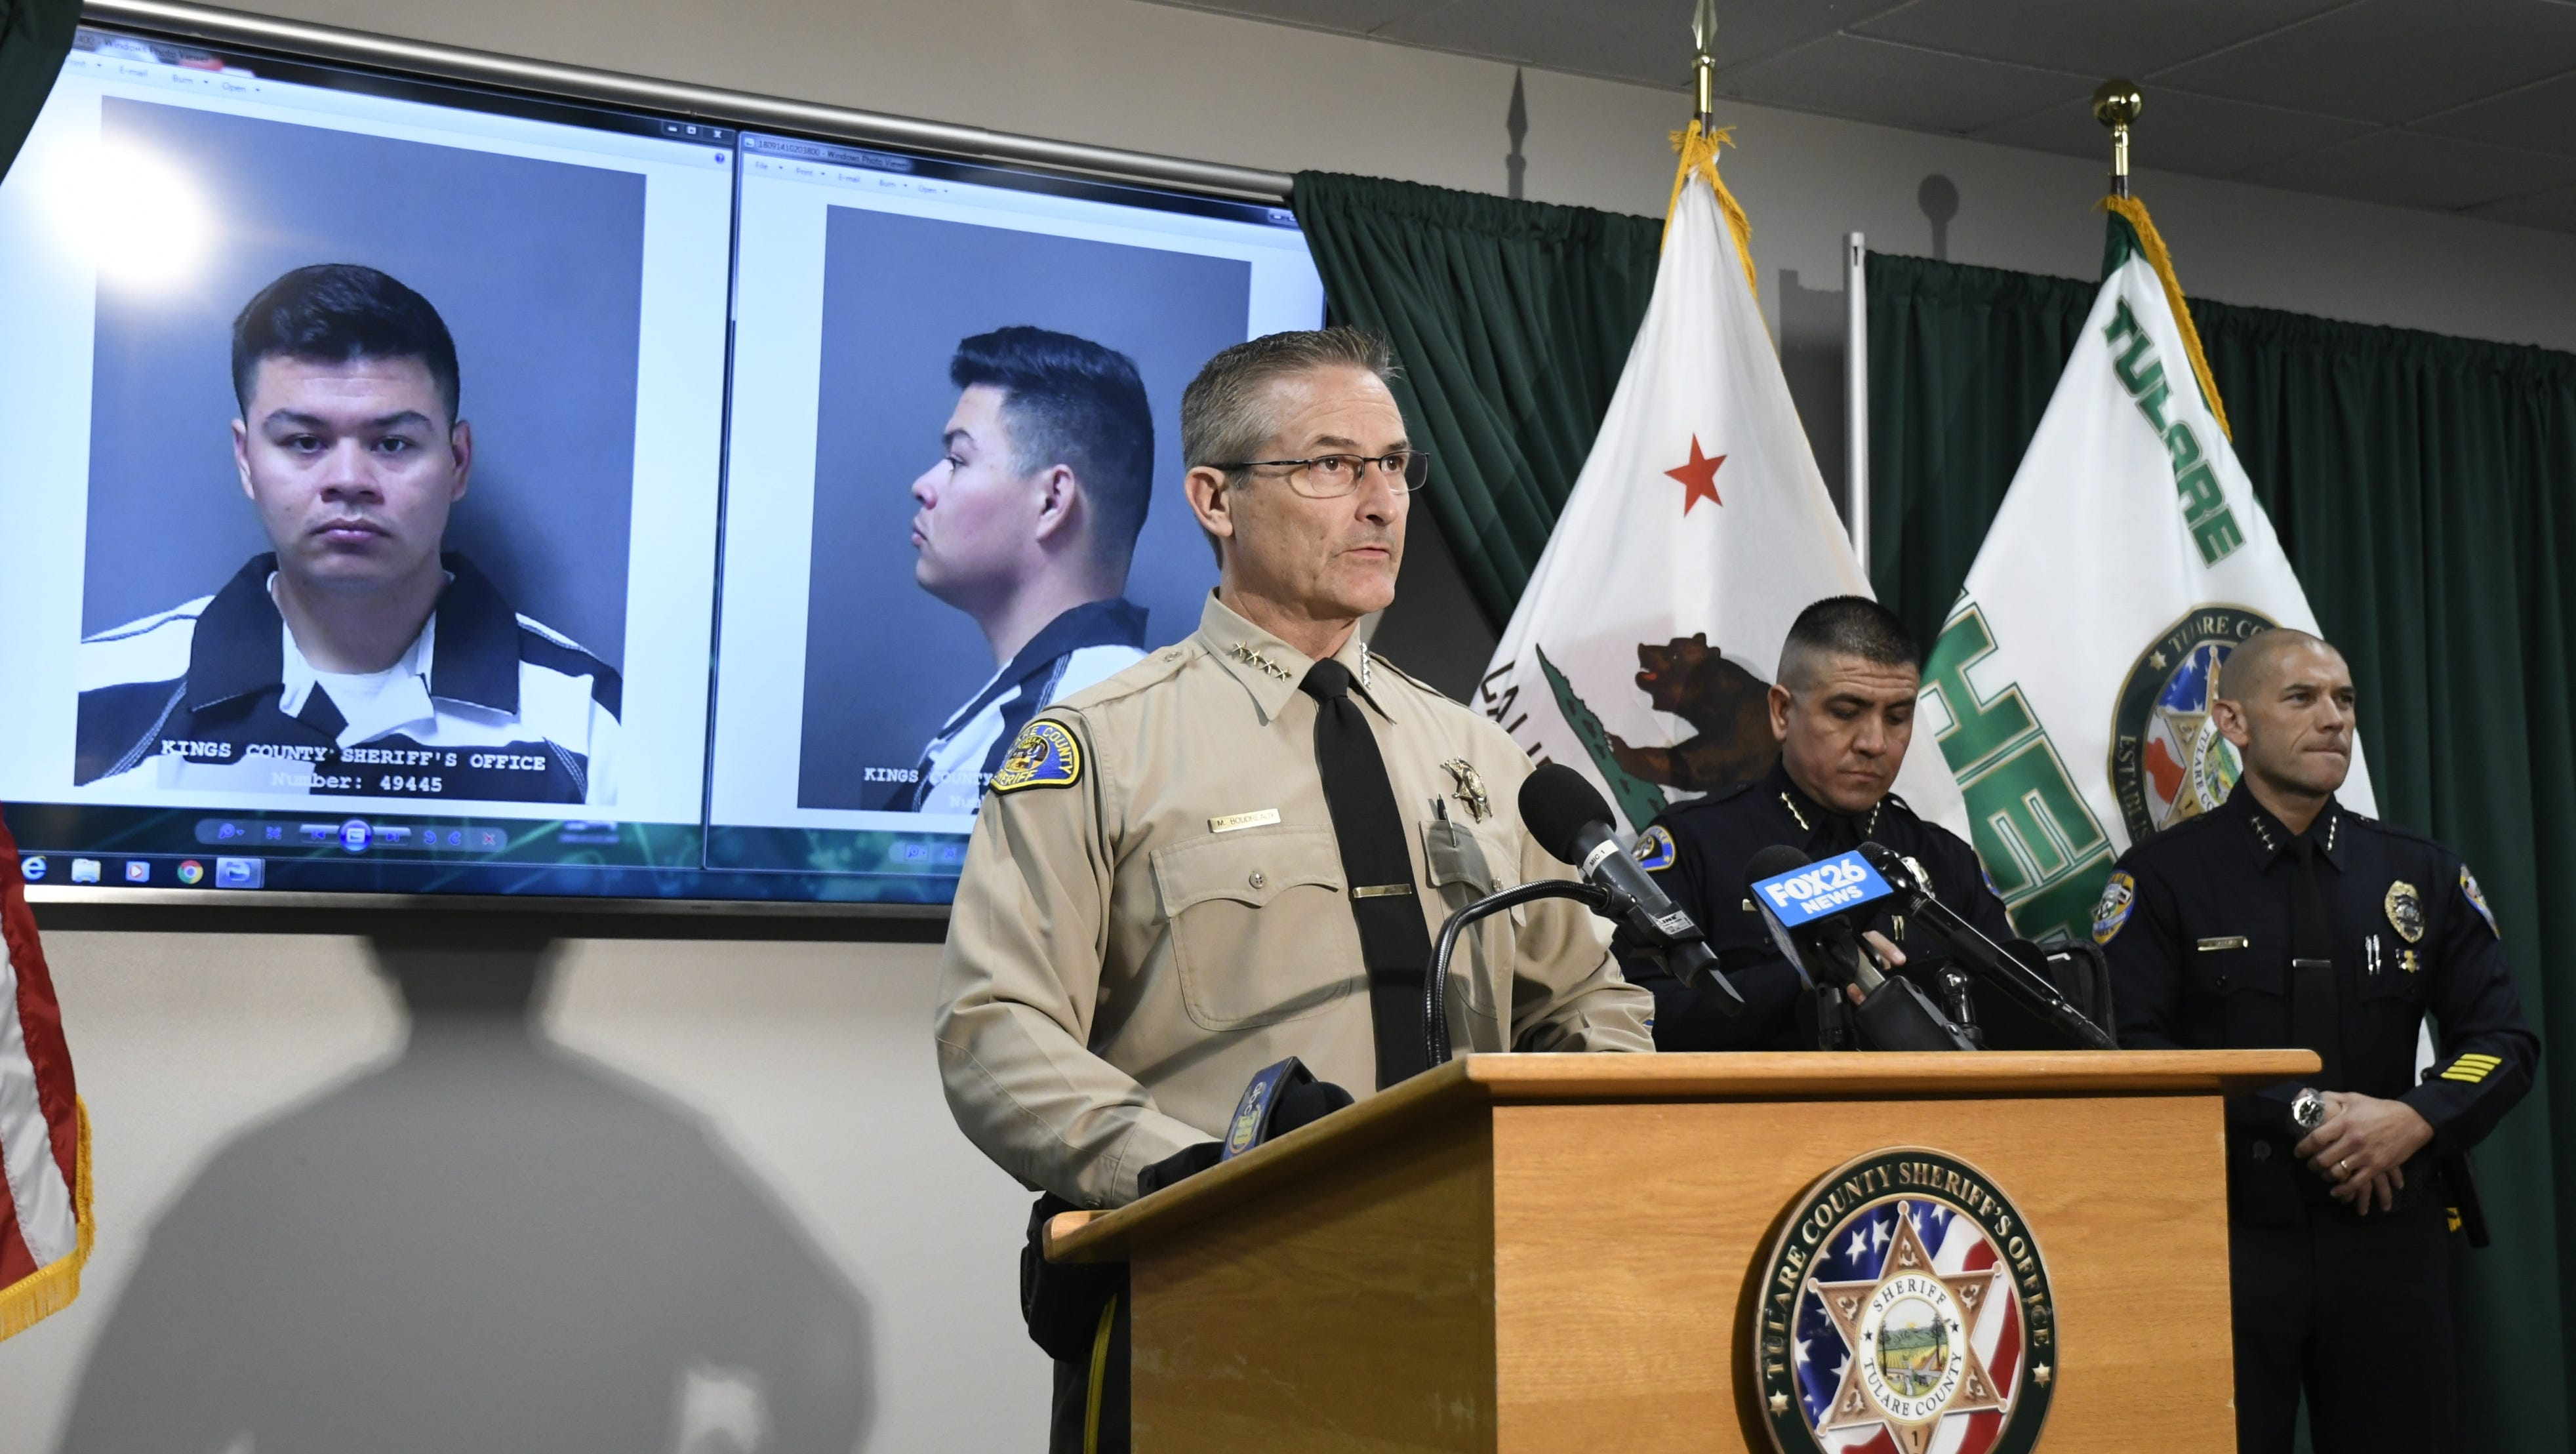 Sheriff Mike Boudreaux held a press conference on Friday regarding the arrest of a Woodlake officer.